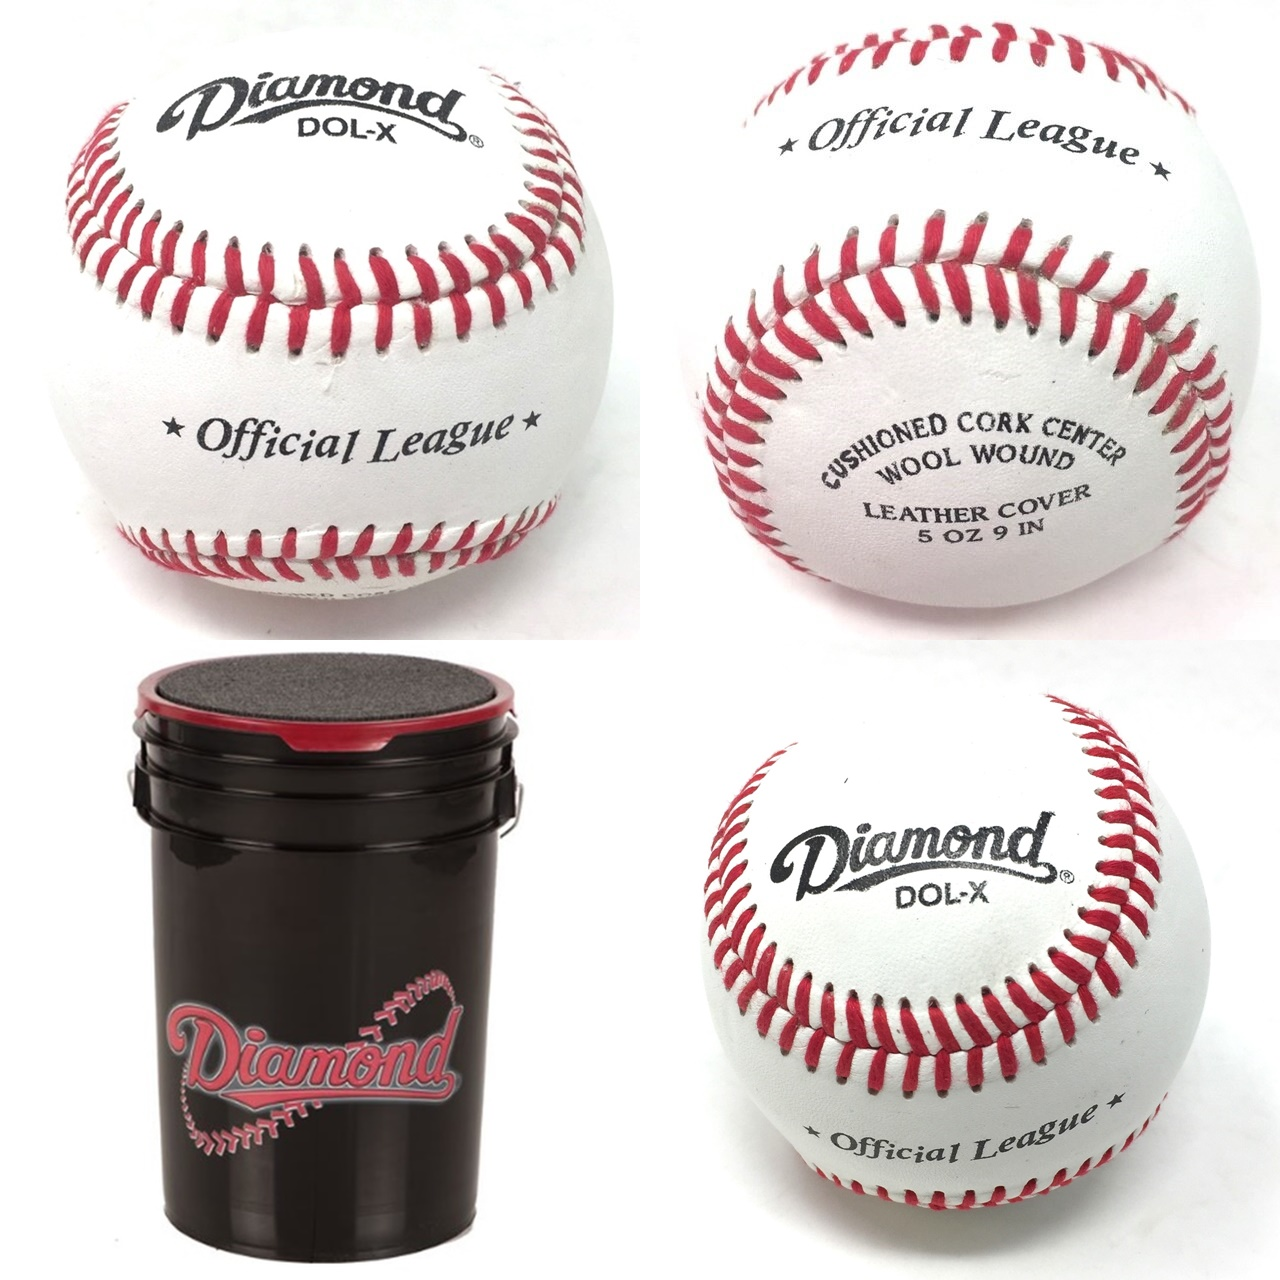 diamond-dol-x-official-baseballs-30-balls-and-bucket-leather DOLX-30-BUCKET Diamond Does Not Apply <p>Leather Cover Cushioned Cork Center Wood Wound 5 oz 9 in